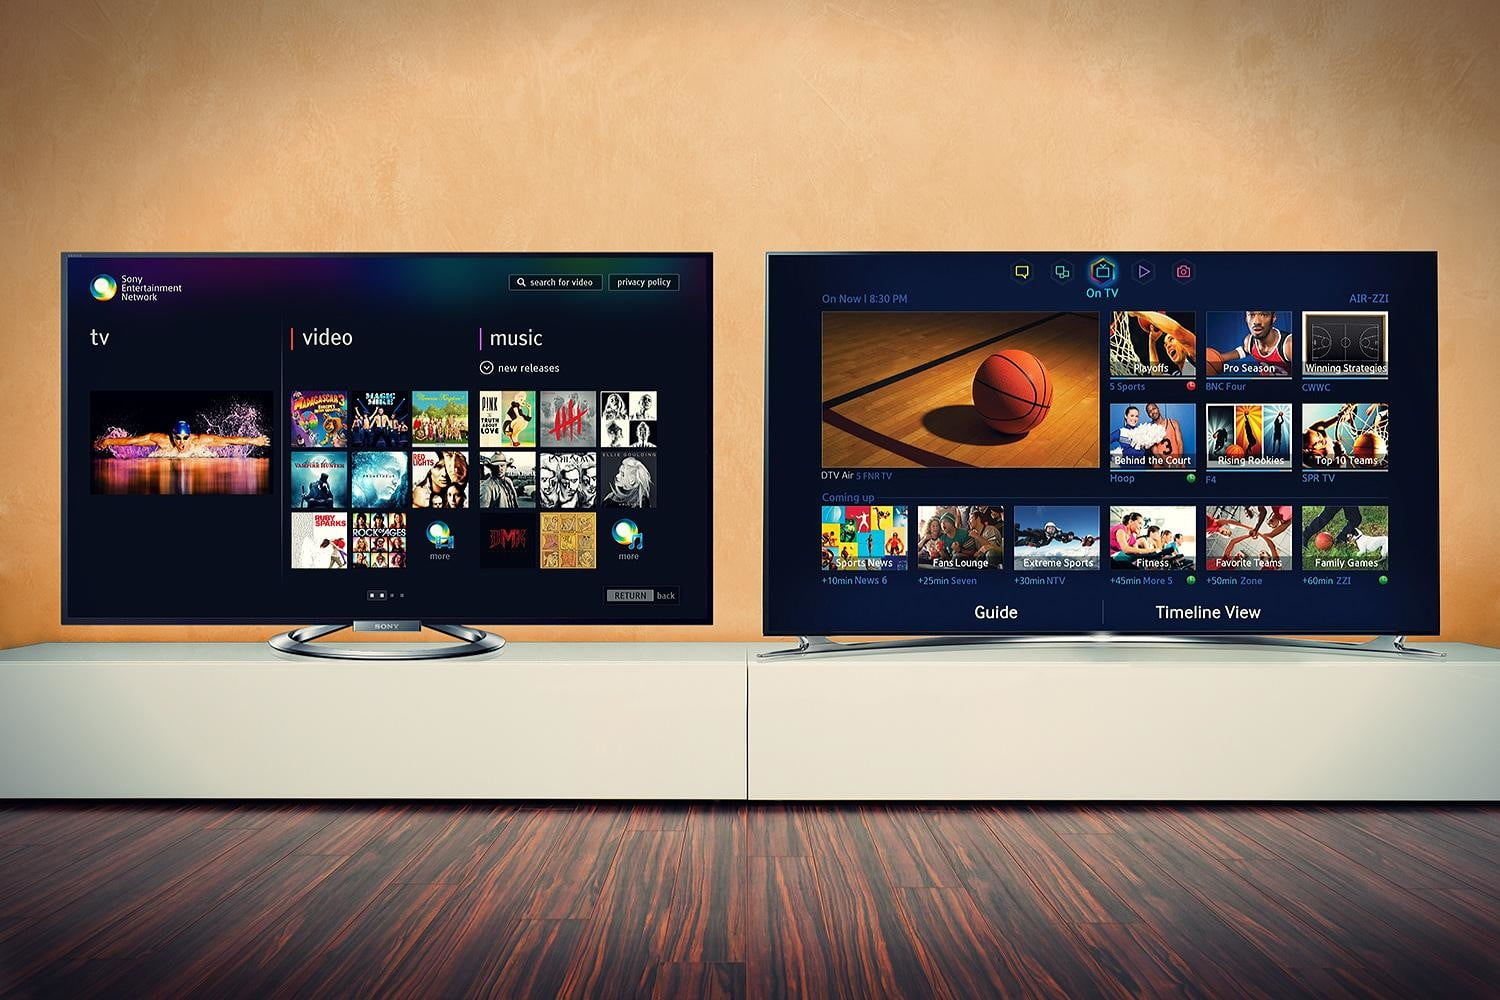 Which TV is which company is better? 23